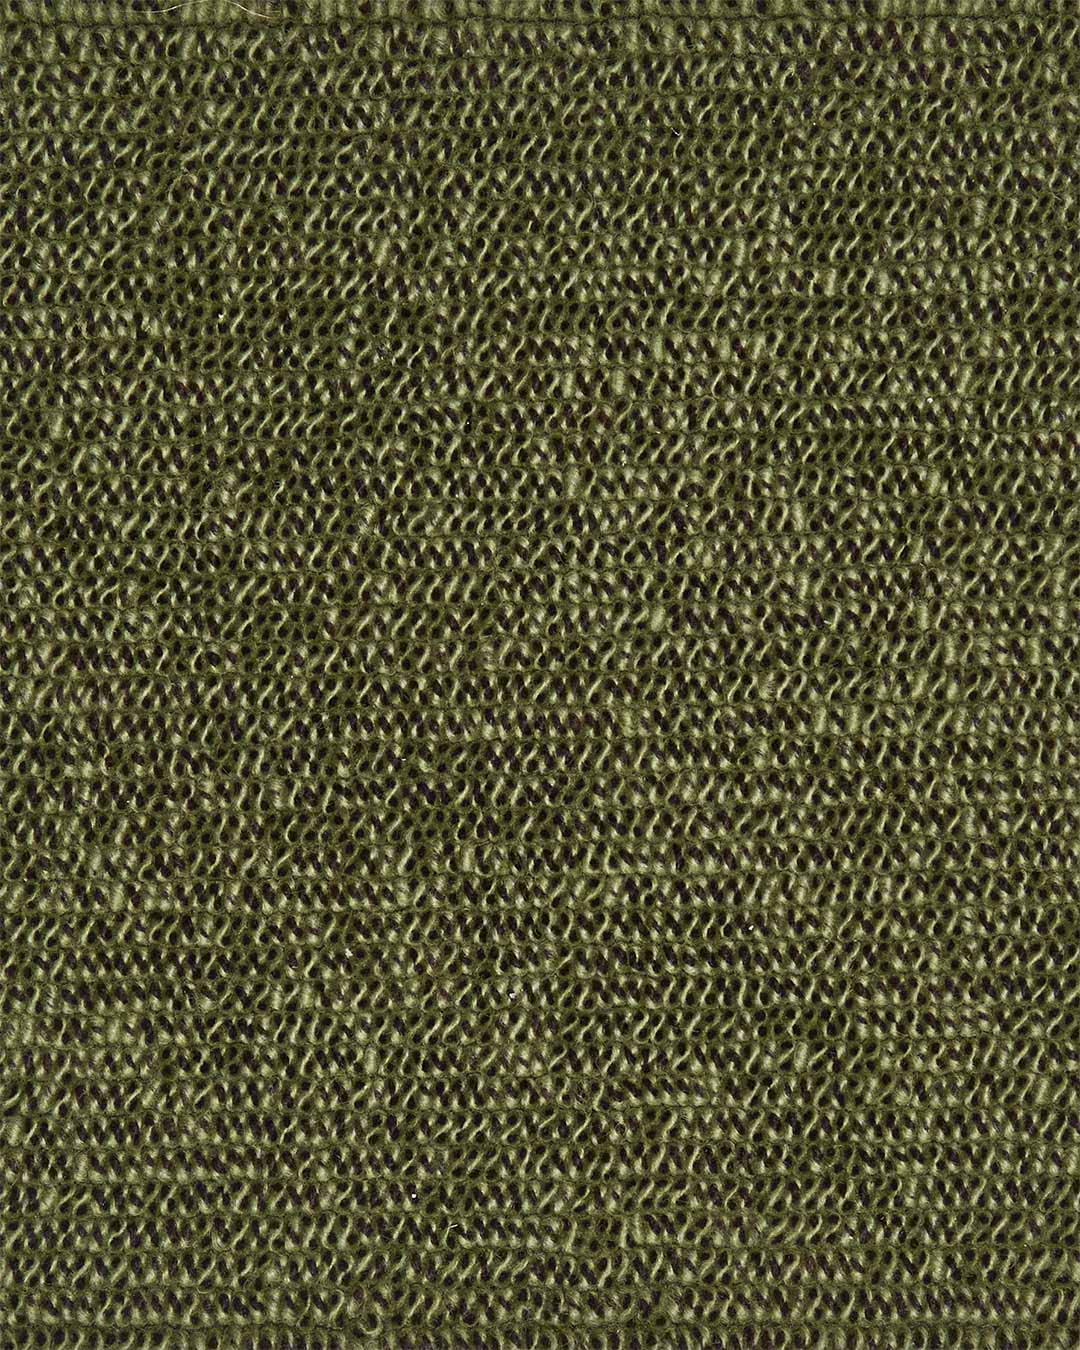 Close up view of textured Coral Tip Shear Loop rug in olive green colour